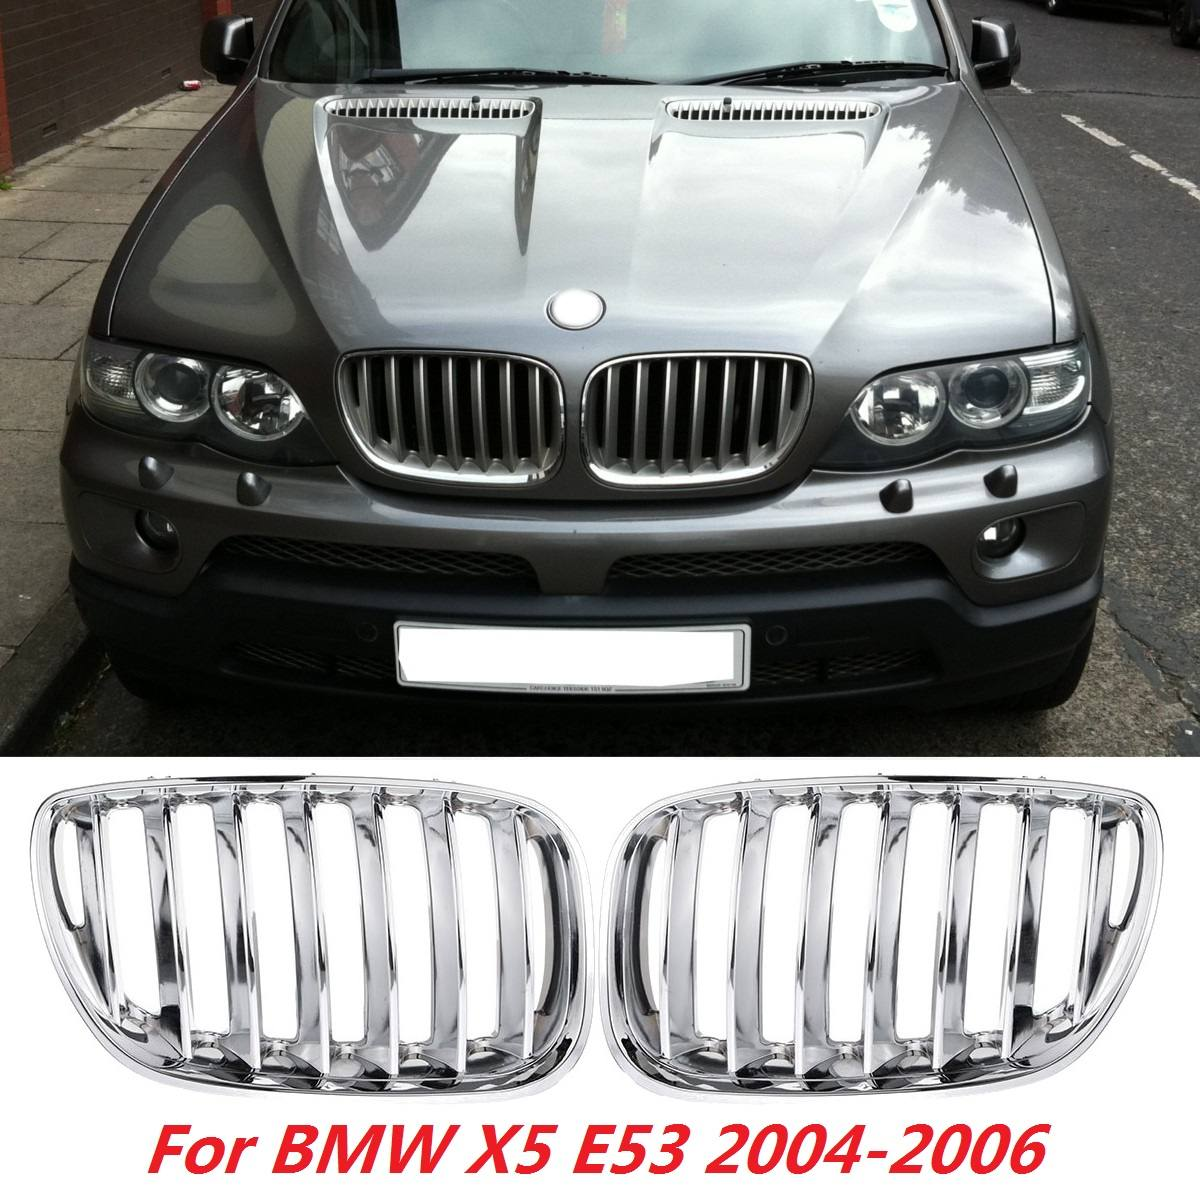 for BMW X5 E53 2004 2005 2006 Pair Chrome Front Hood Kidney Grills Grille Front Bumper